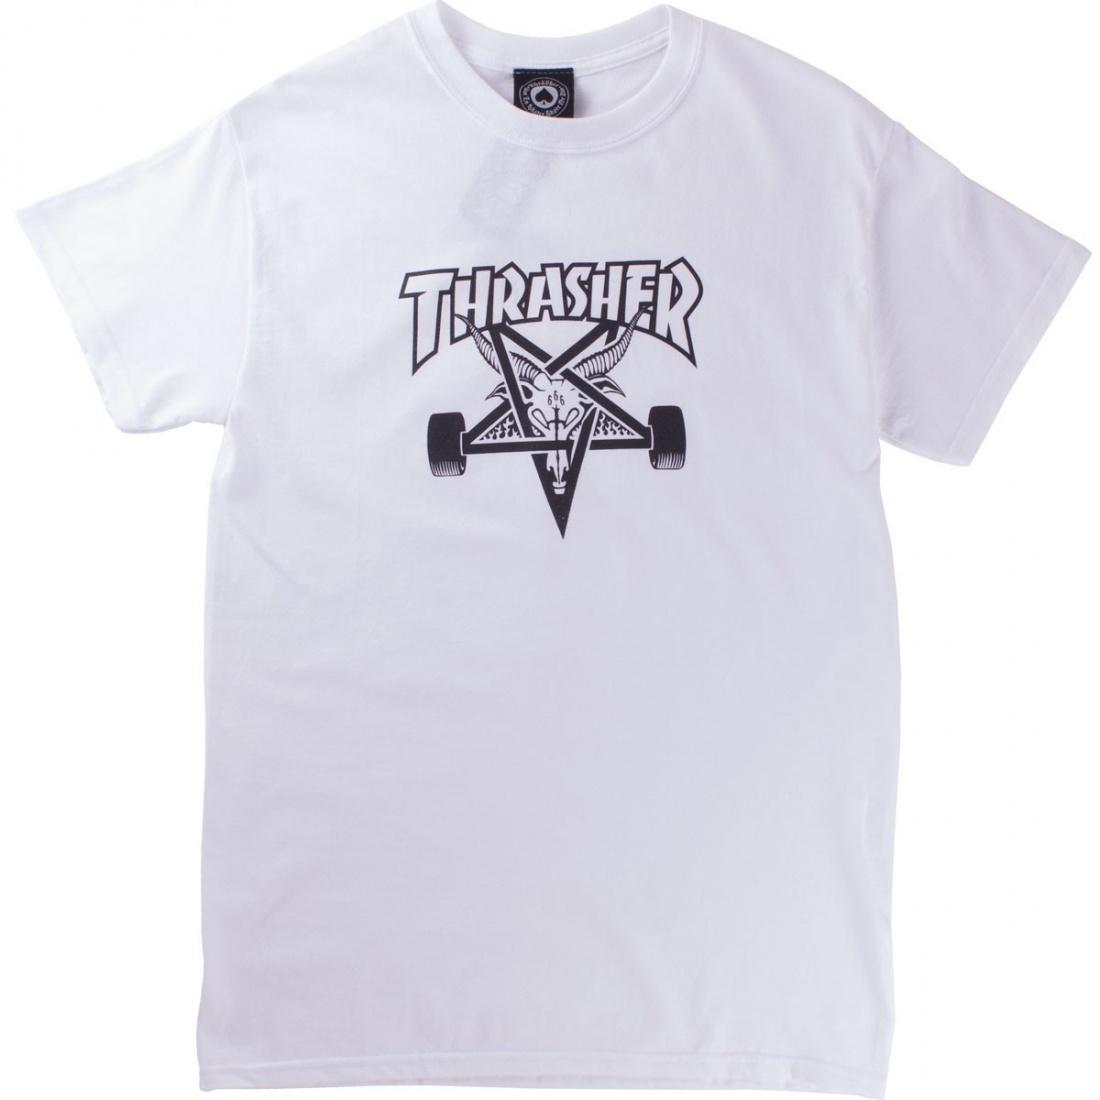 THRASHER Футболка Thrasher Skate Goat White L thrasher наклейка thrasher skate and destroy m